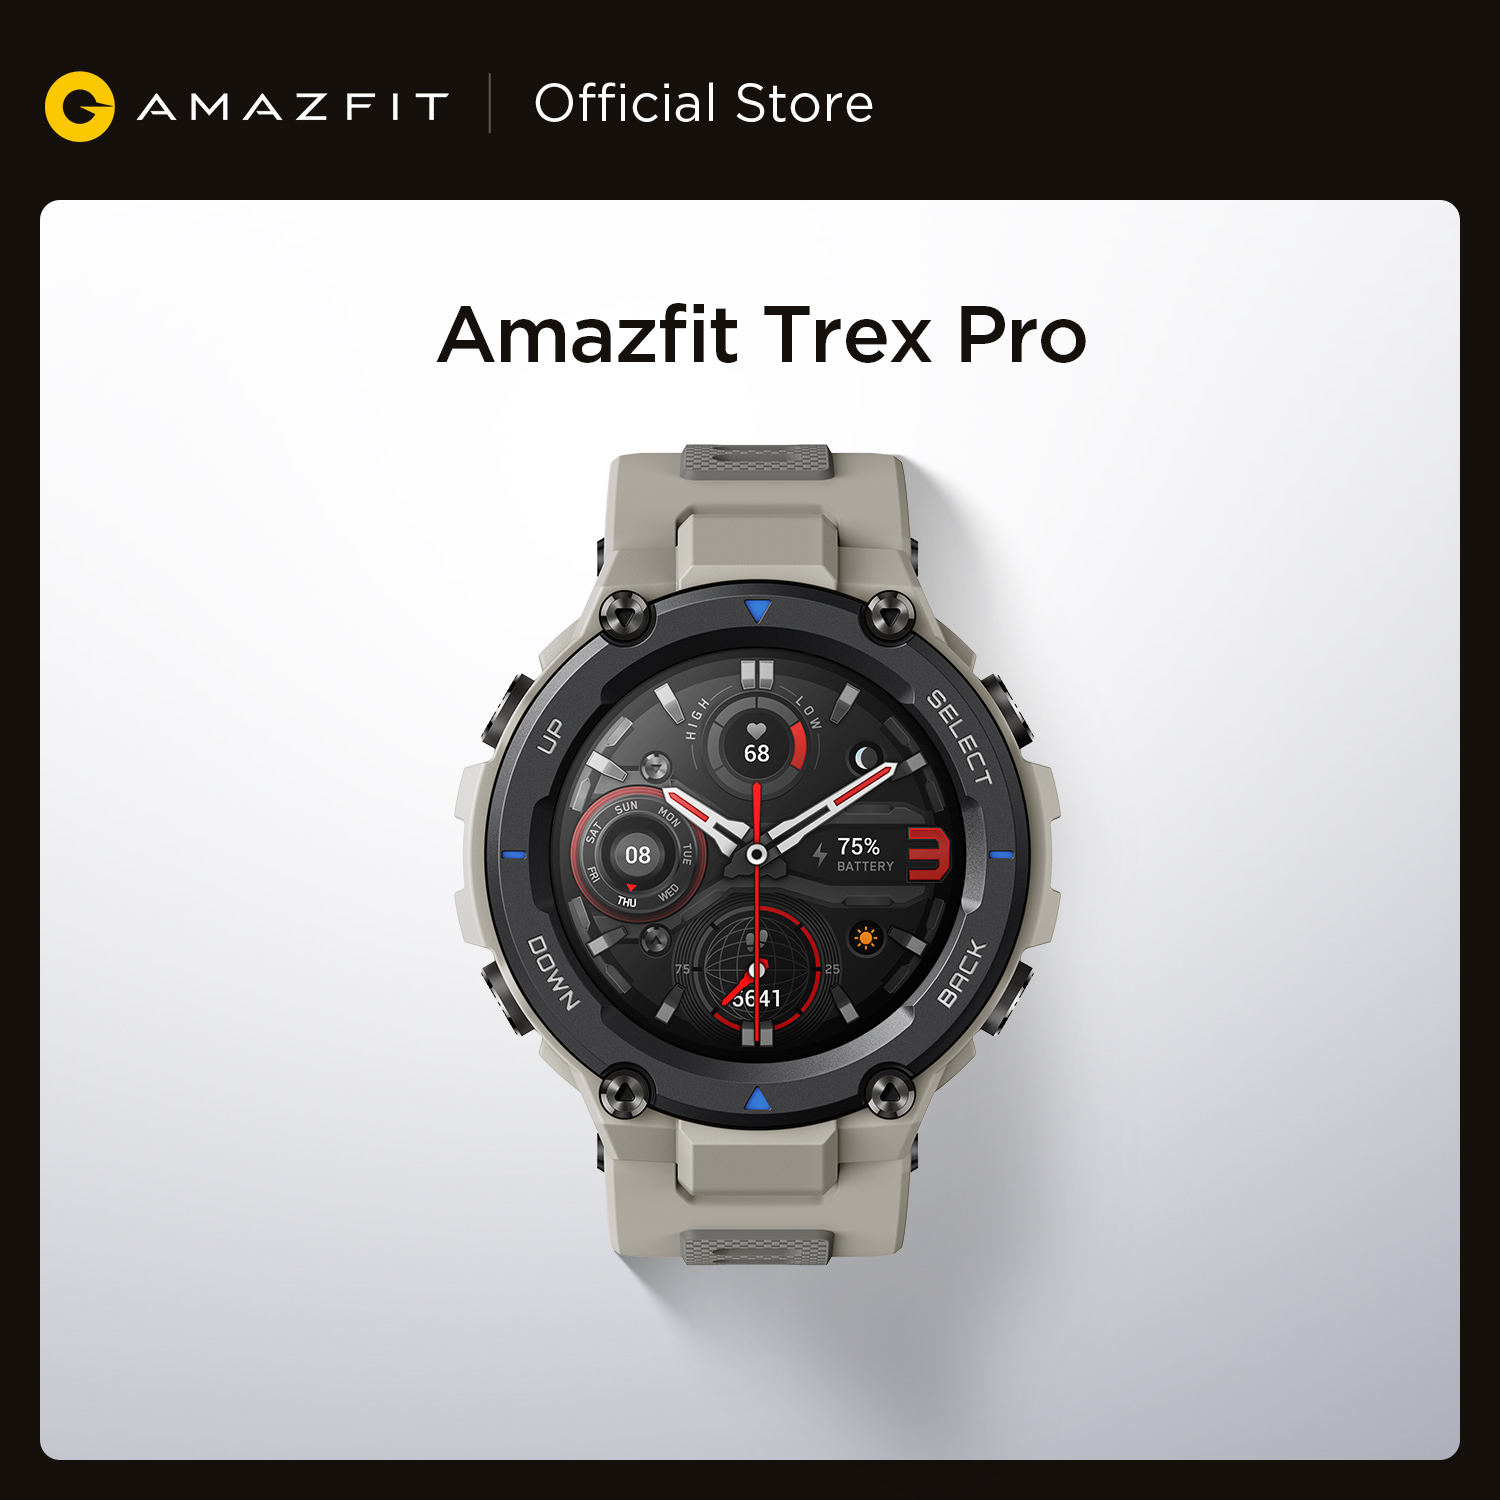 Permalink to Original Amazfit Trex Pro Outdoor Smartwatch 100+ Sports 10 ATM 18-day Battery Life Swimming Smart Watch For Android iOS Phone